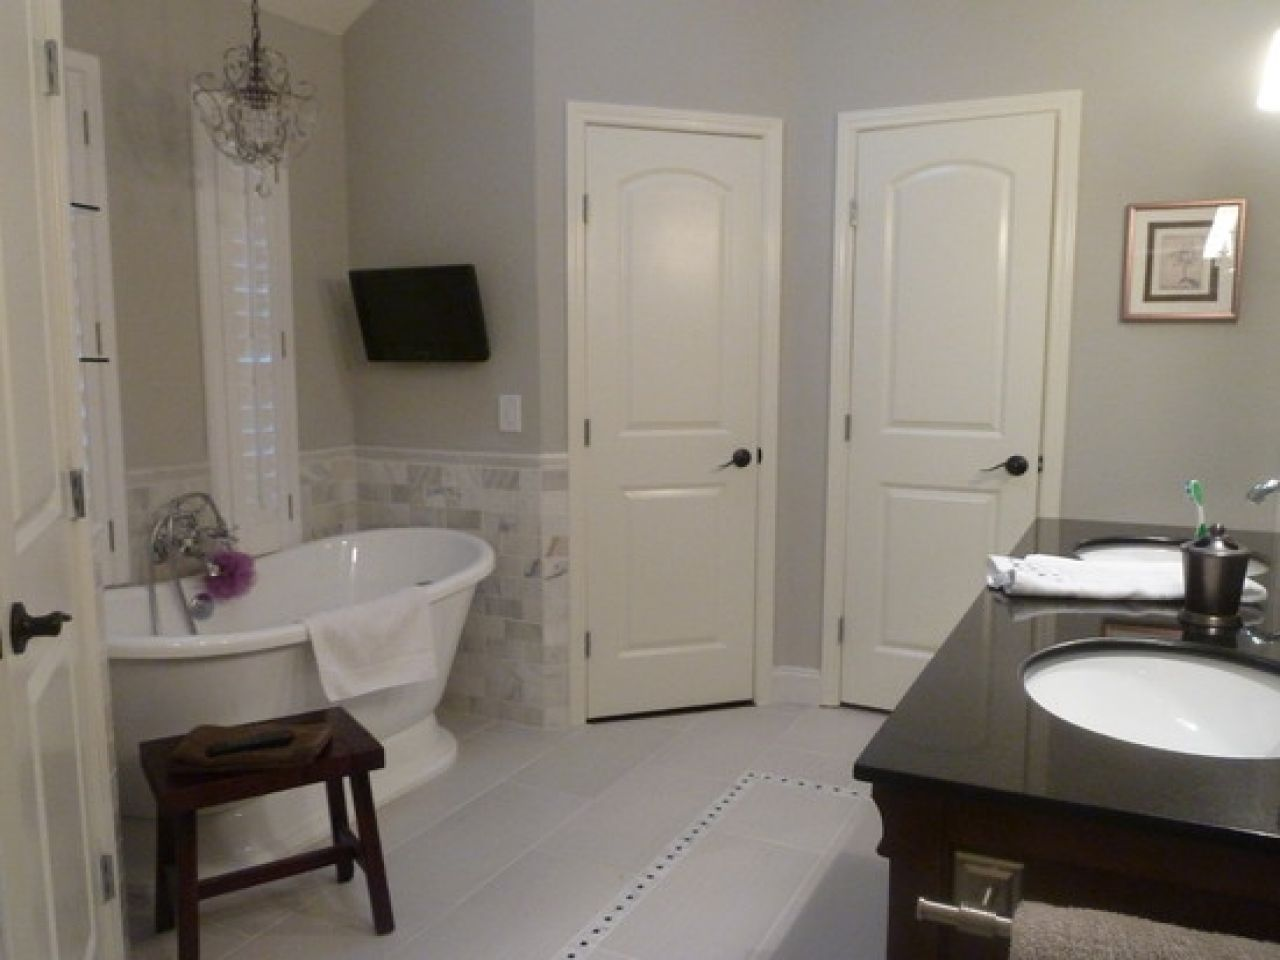 image result for agreeable gray kitchen agreeable gray by sherwin wms pinterest agreeable. Black Bedroom Furniture Sets. Home Design Ideas